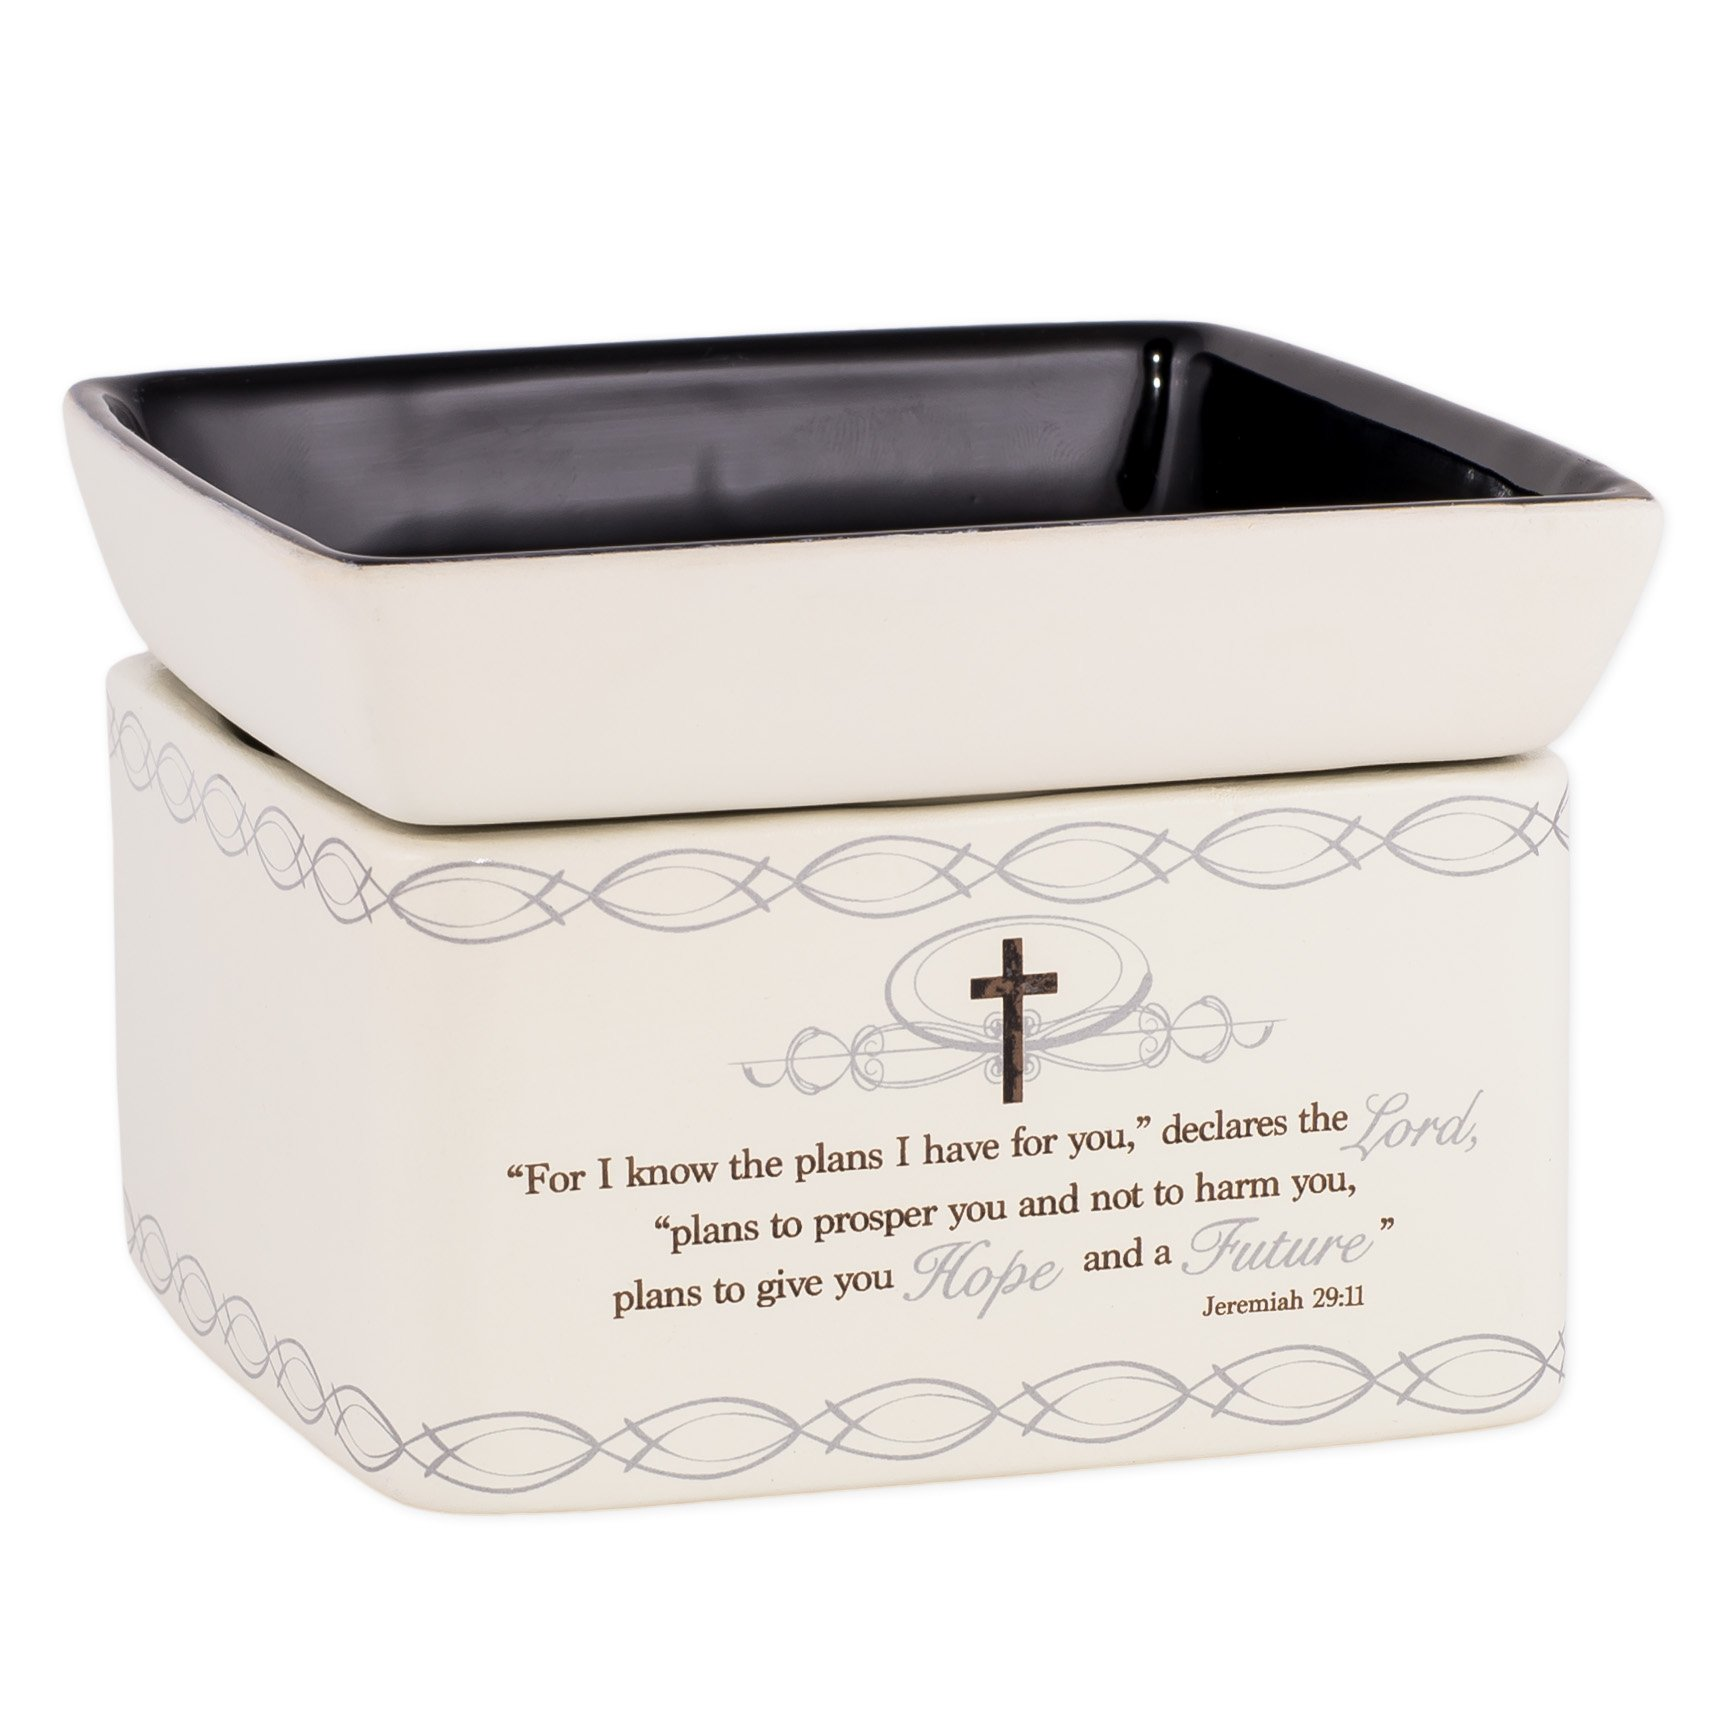 Elanze Designs For I Know the Plans I Have For You Jeremiah 29:11 Ceramic Stone 2-in-1 Tart Wax Oil Candle Warmer